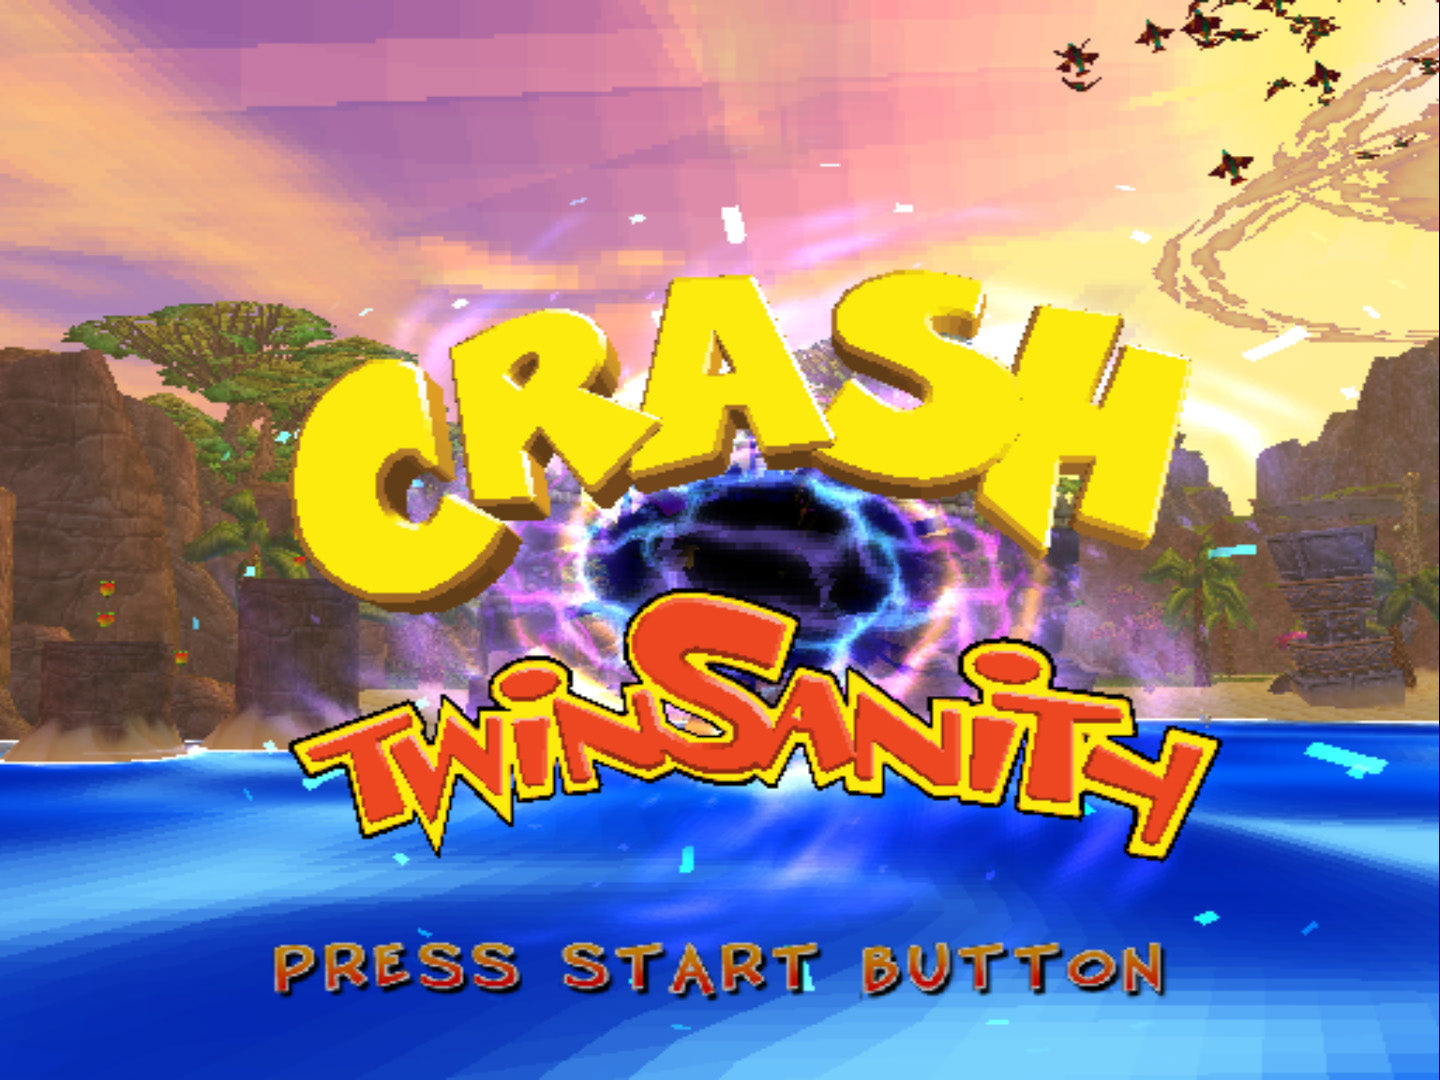 Crash Twinsanity - PlayStation 2 (PS2) Game